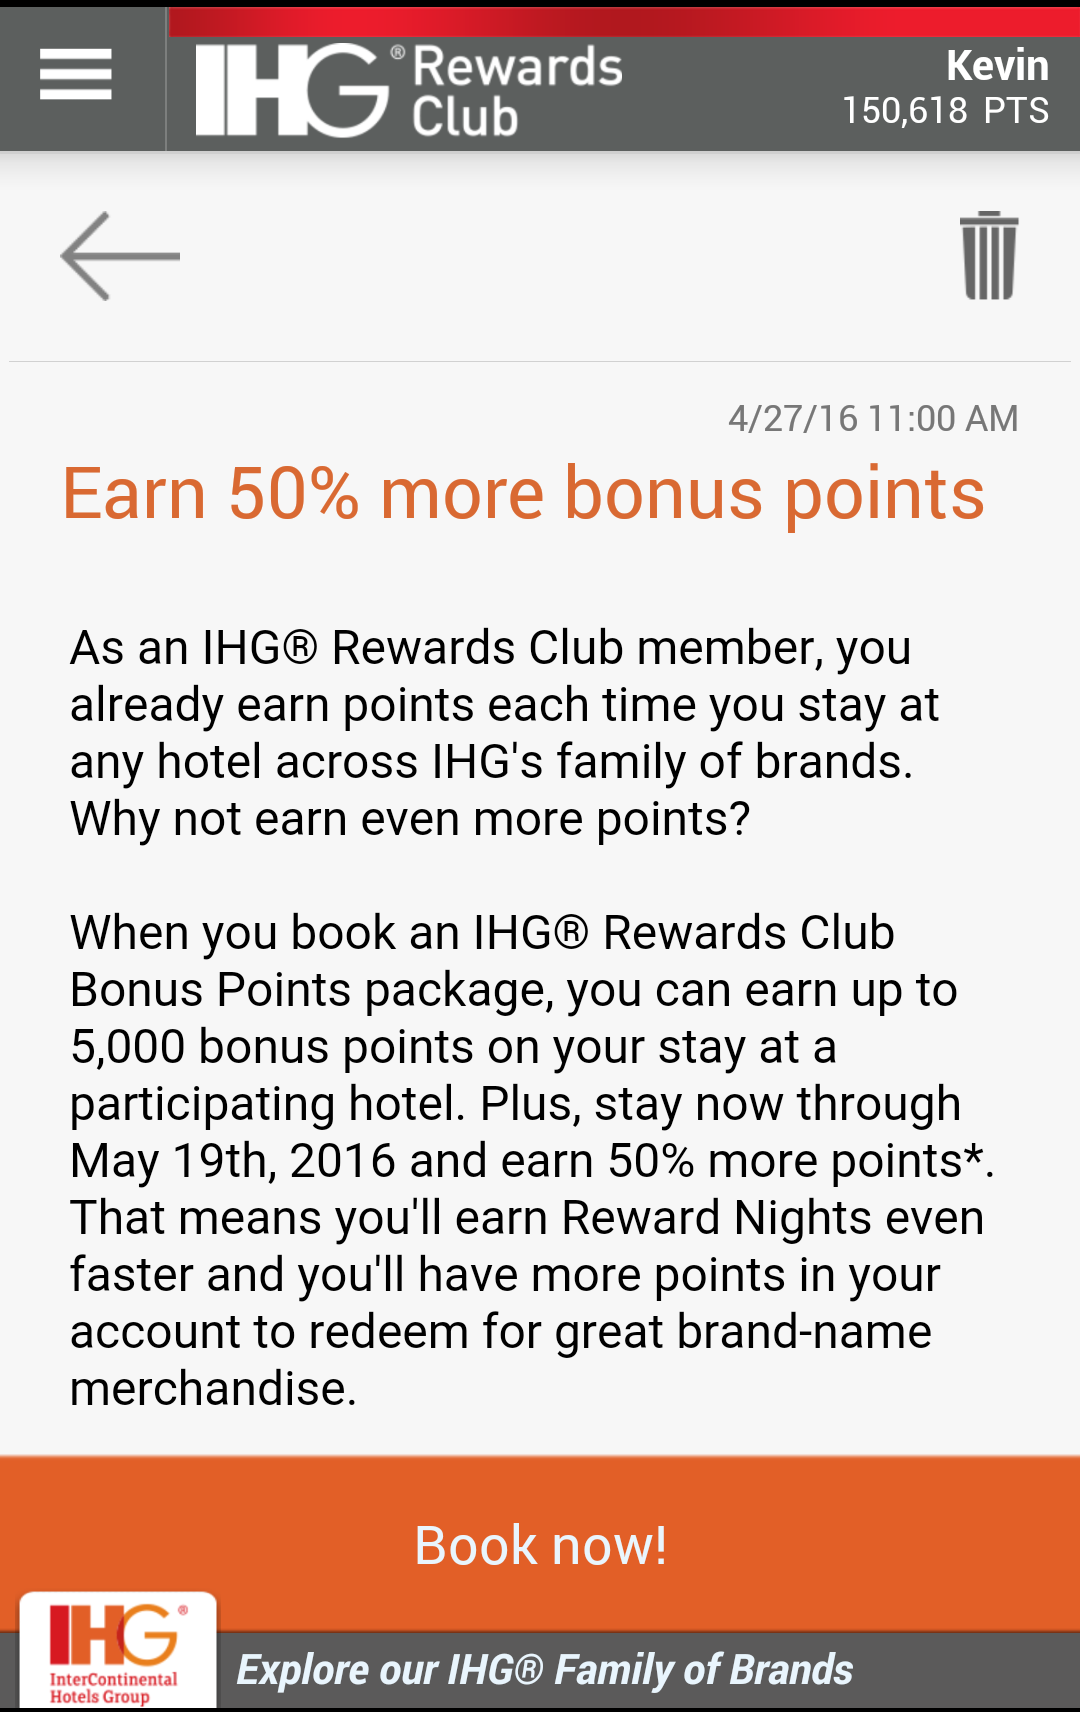 Total Rewards - 304387